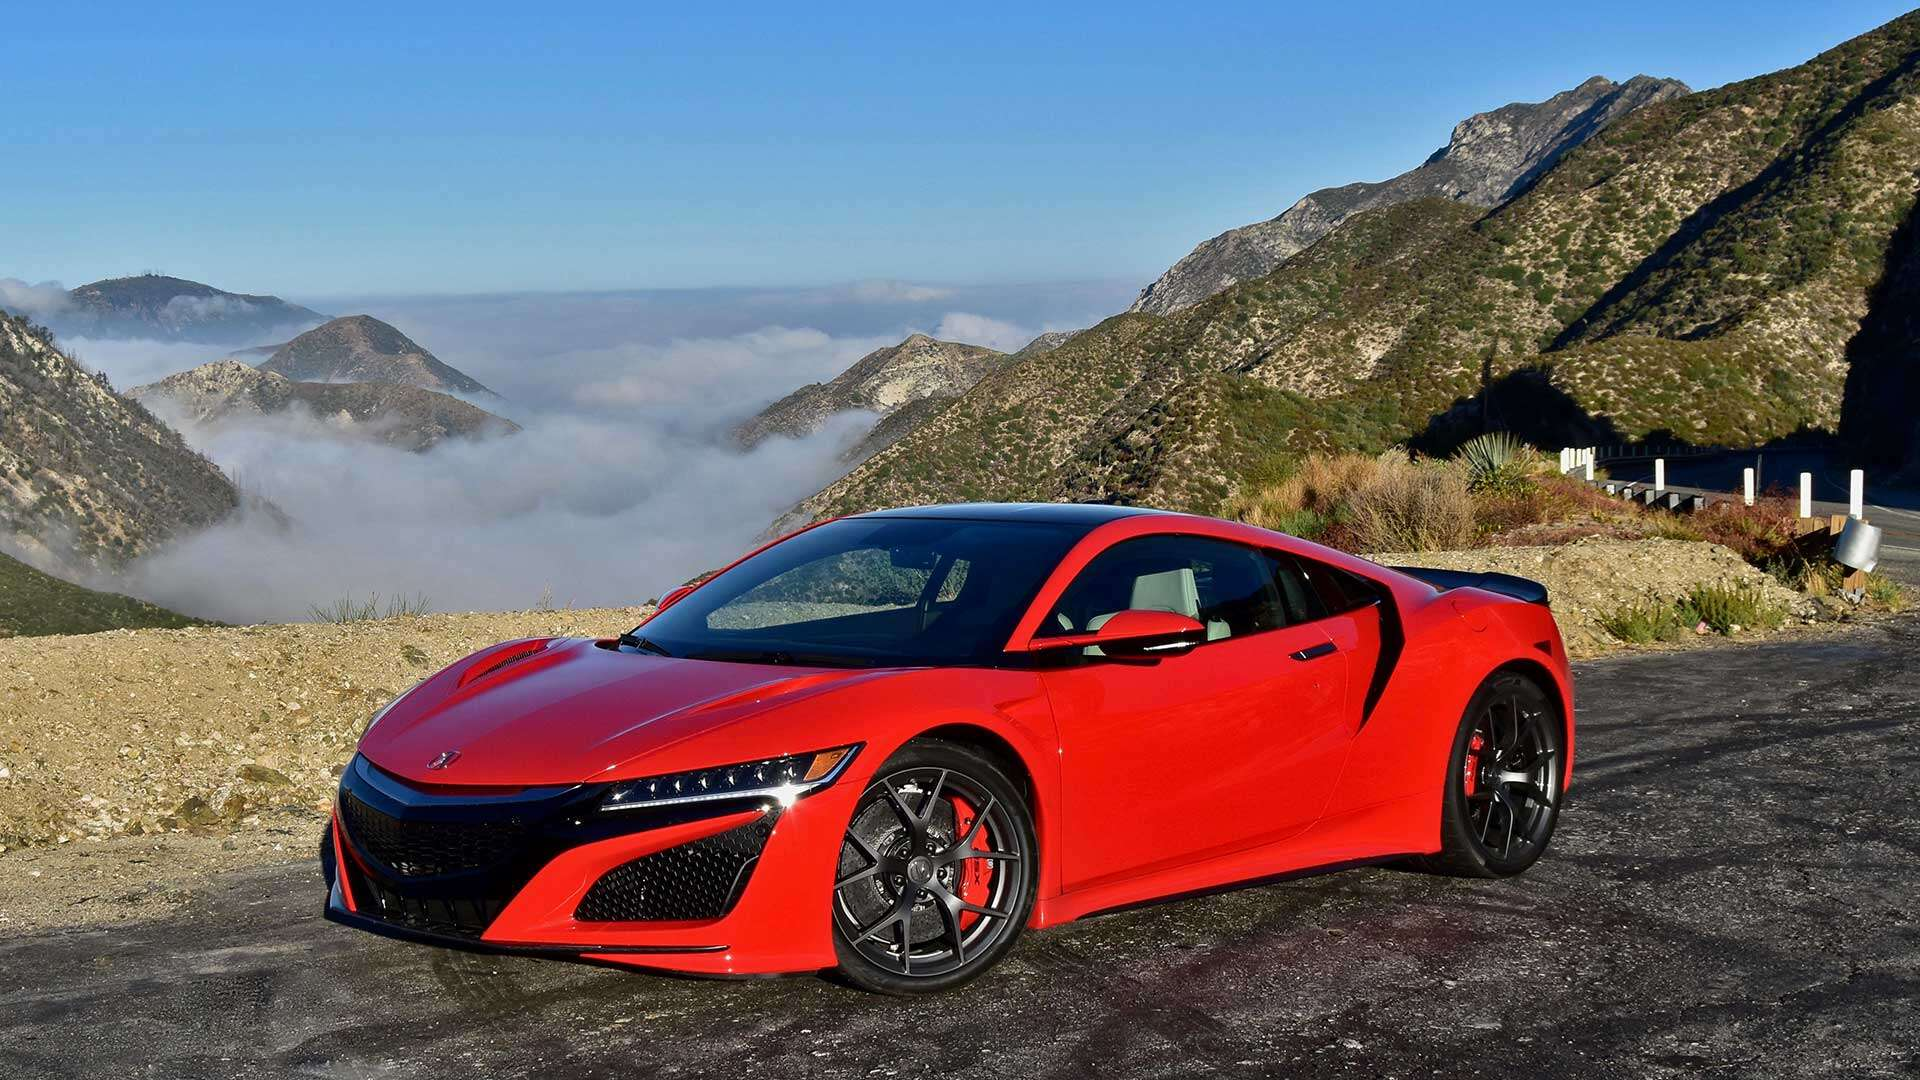 The Acura Nsx On The Angeles Crest Highway Fulfilling A Dream Put